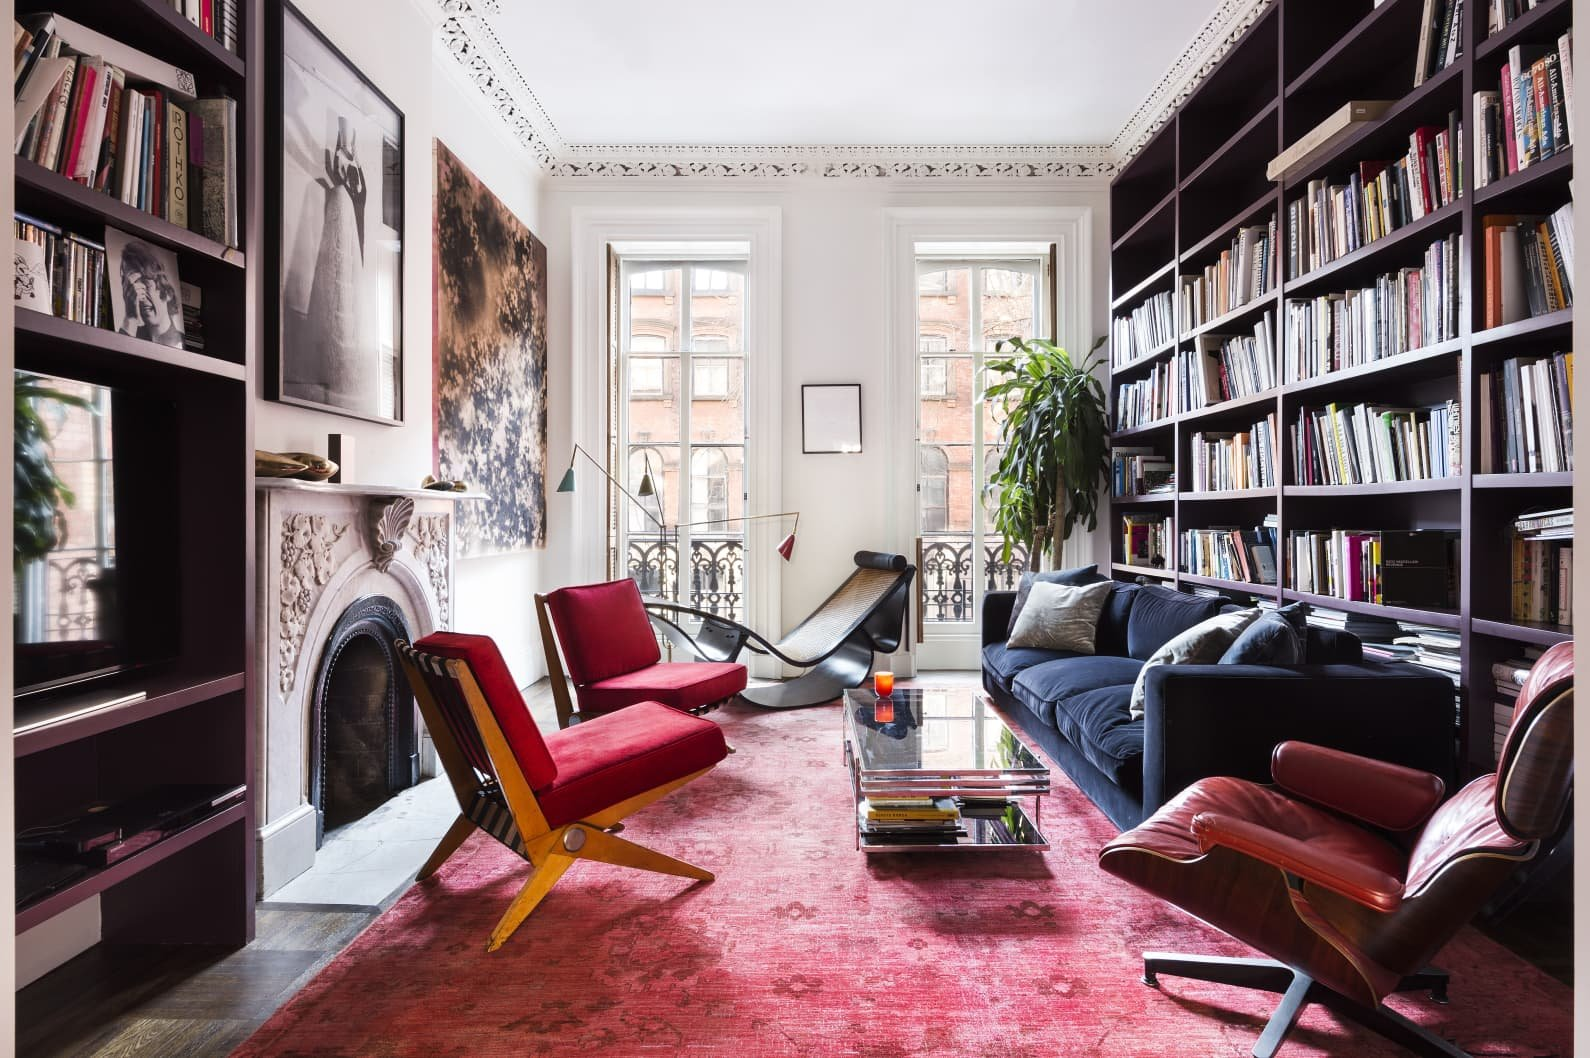 Apartamento Mary Kate Oslen en Manhattan salon con libreria